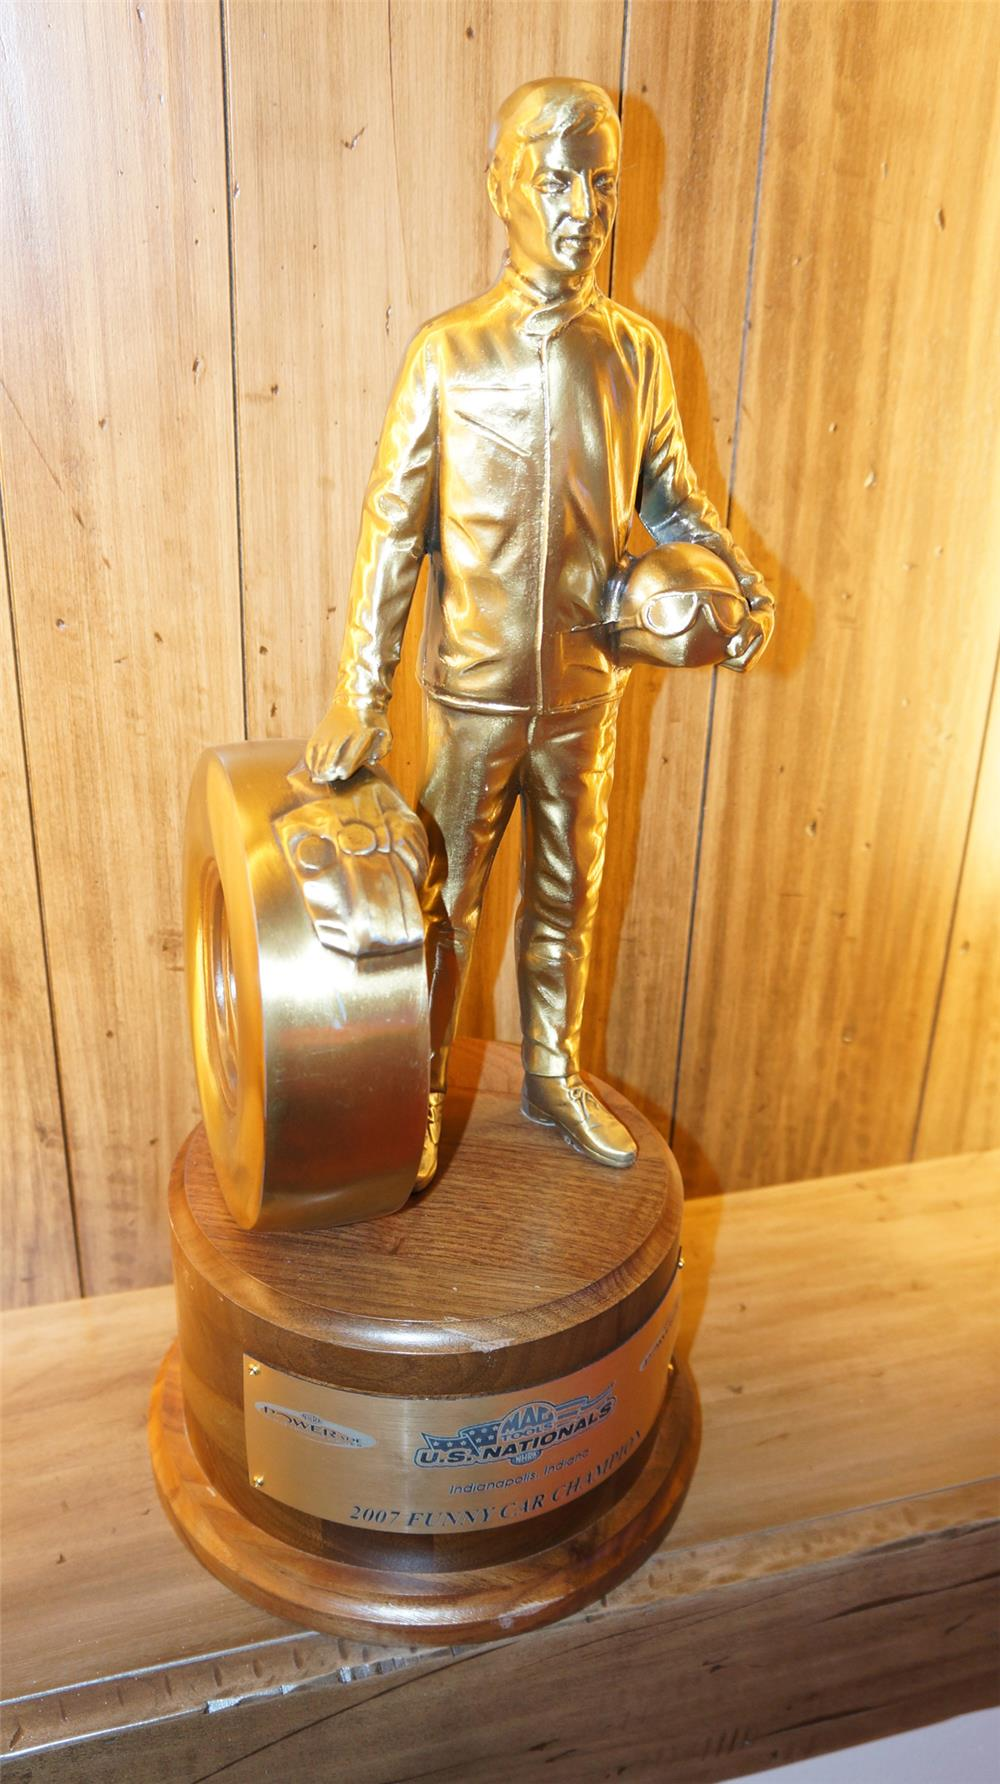 Important 2007 Mac Tools U.S National Funny Car Champion Trophy won by Mike Ashley. - Front 3/4 - 179779